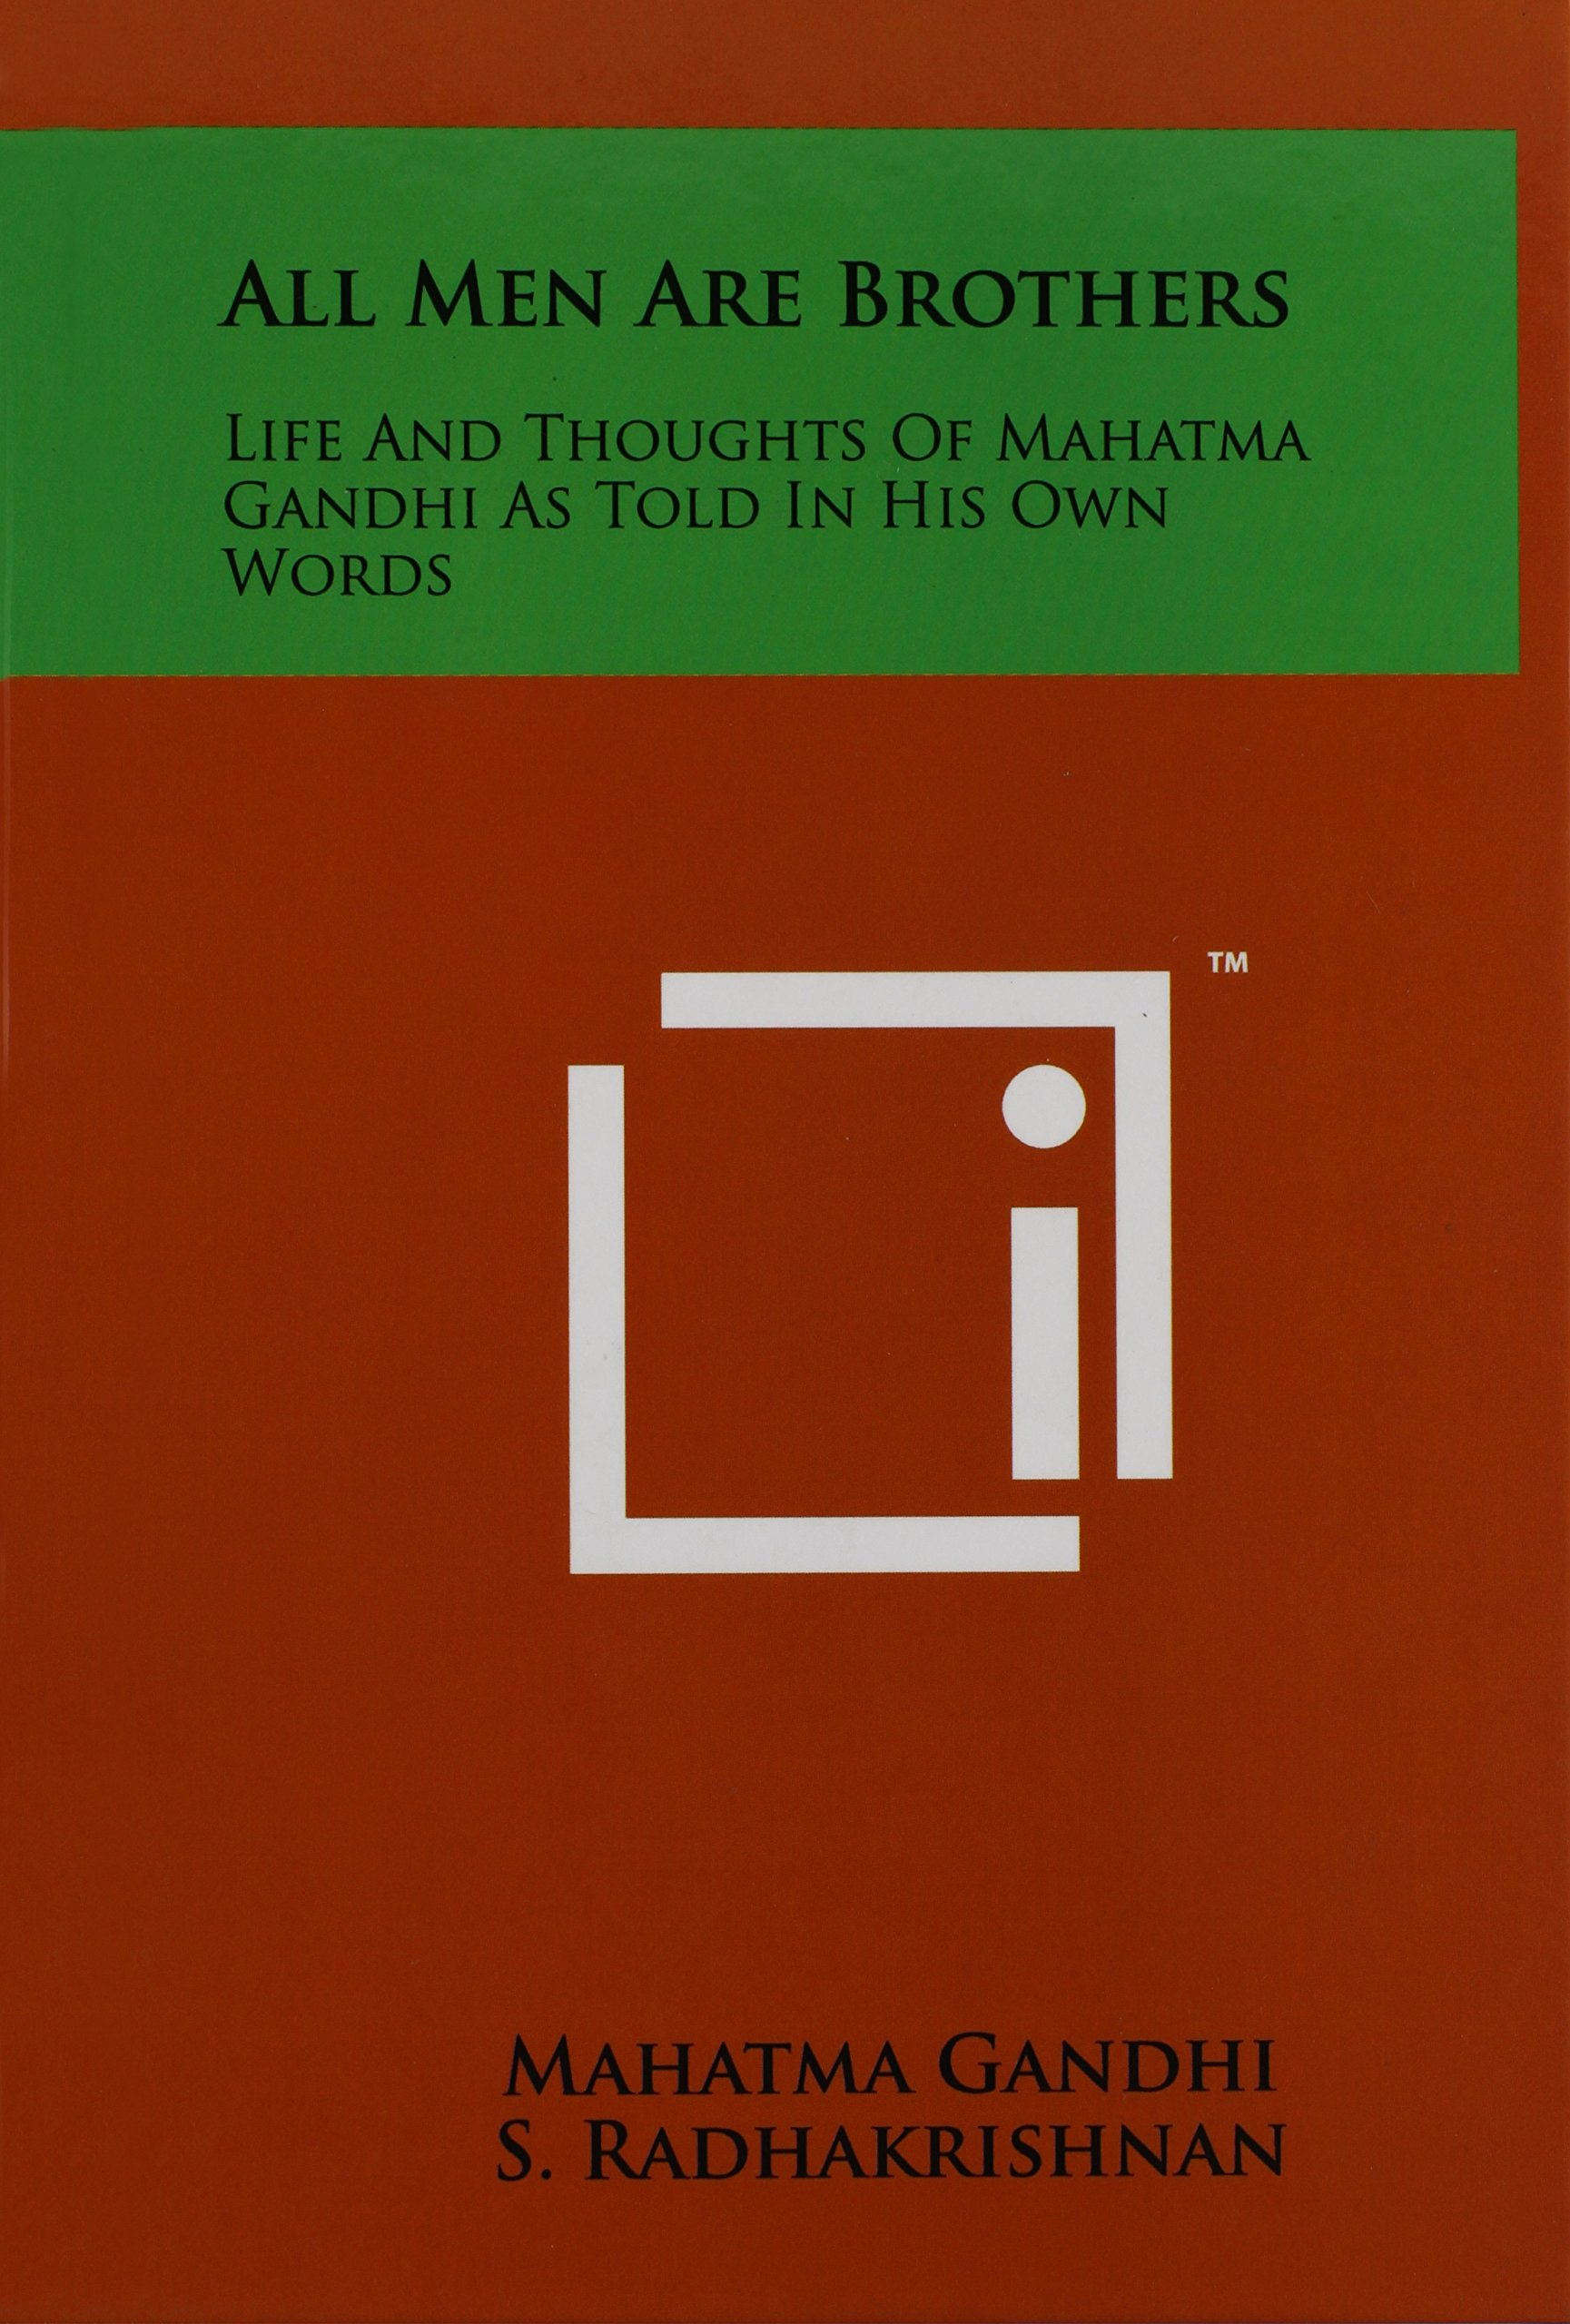 Download All Men Are Brothers: Life And Thoughts Of Mahatma Gandhi As Told In His Own Words PDF